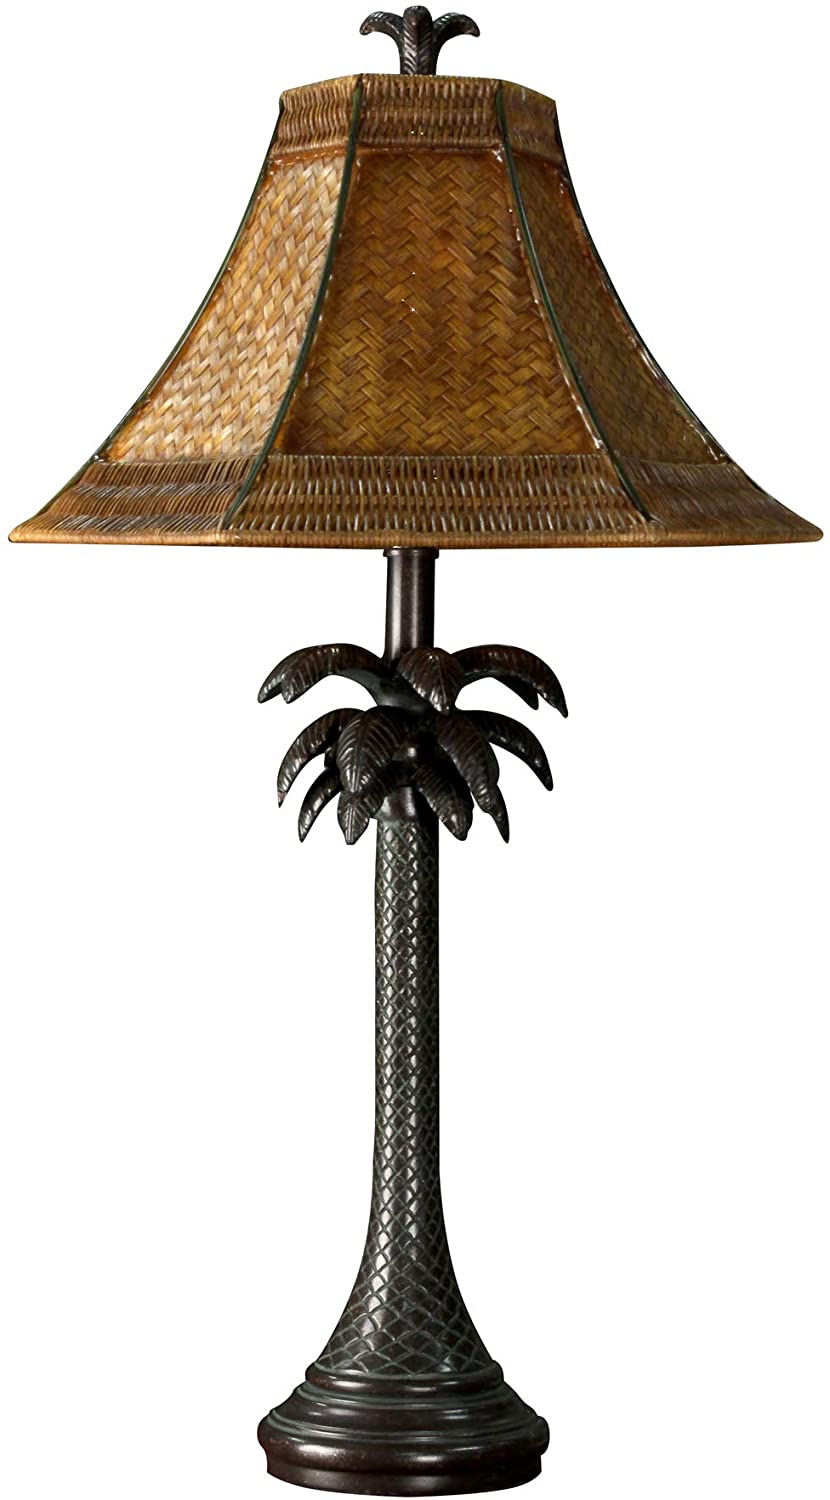 Collective Design 720354122639 Tropical Palm Tree Steel Table Lamp, Dark Brown Finish with Woven Rattan Shade